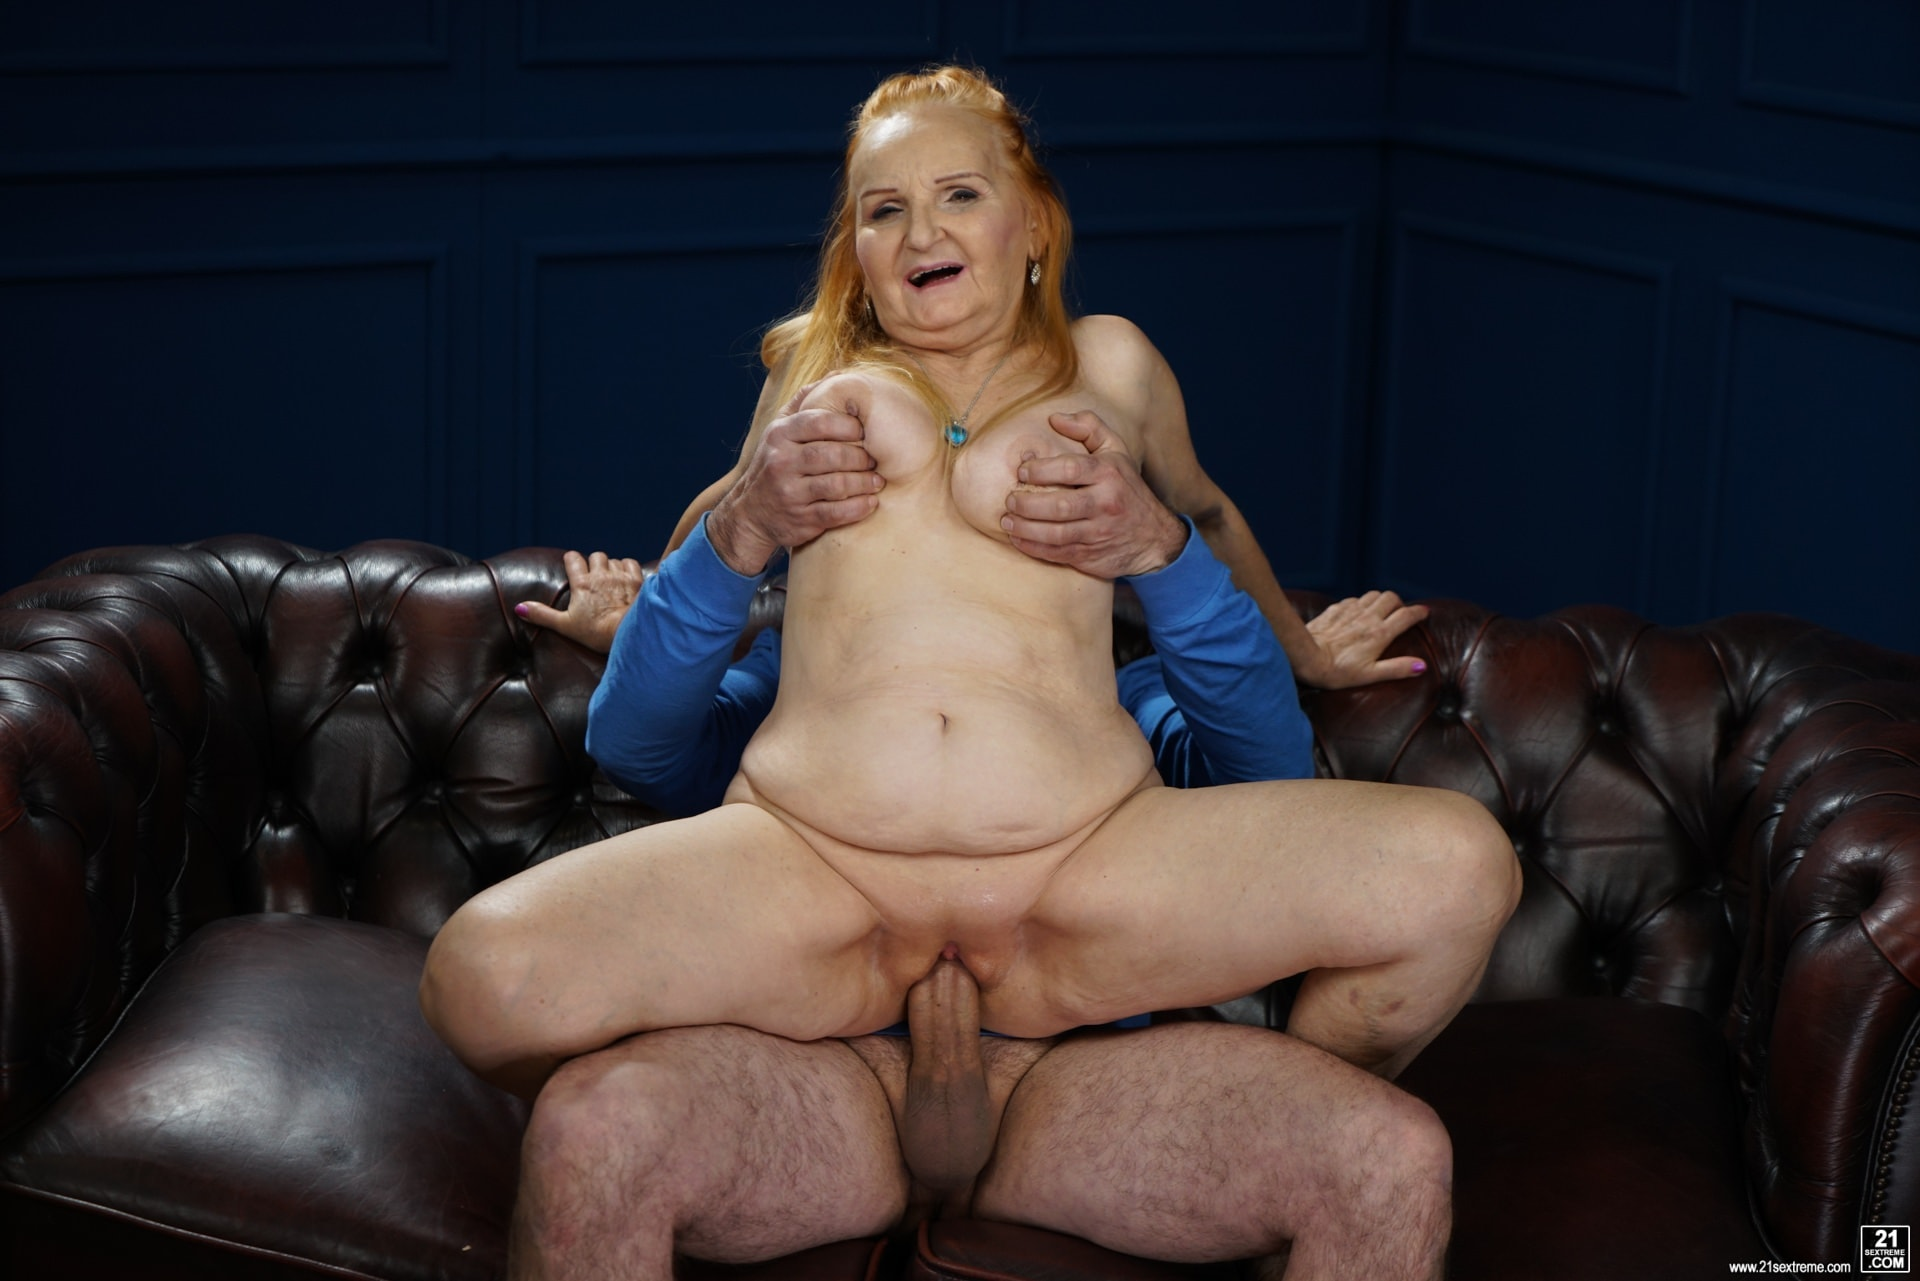 21Sextury 'Happiness Online' starring Marianne (Photo 49)